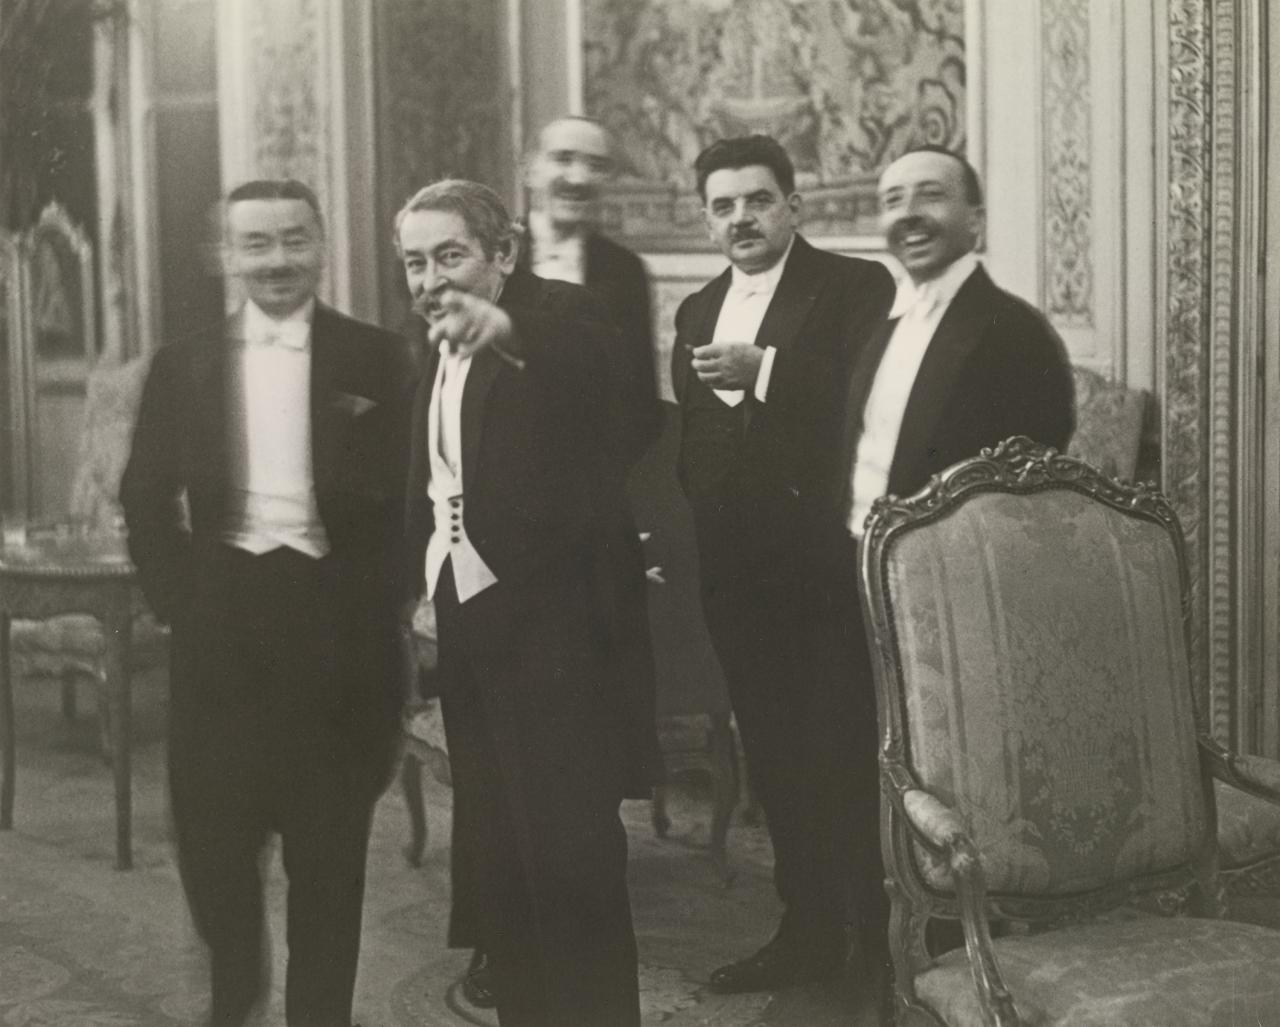 Banquet at the Quai d'Orsay, Paris, August 1931. 'A le voilà, le roi des indiscrets!'